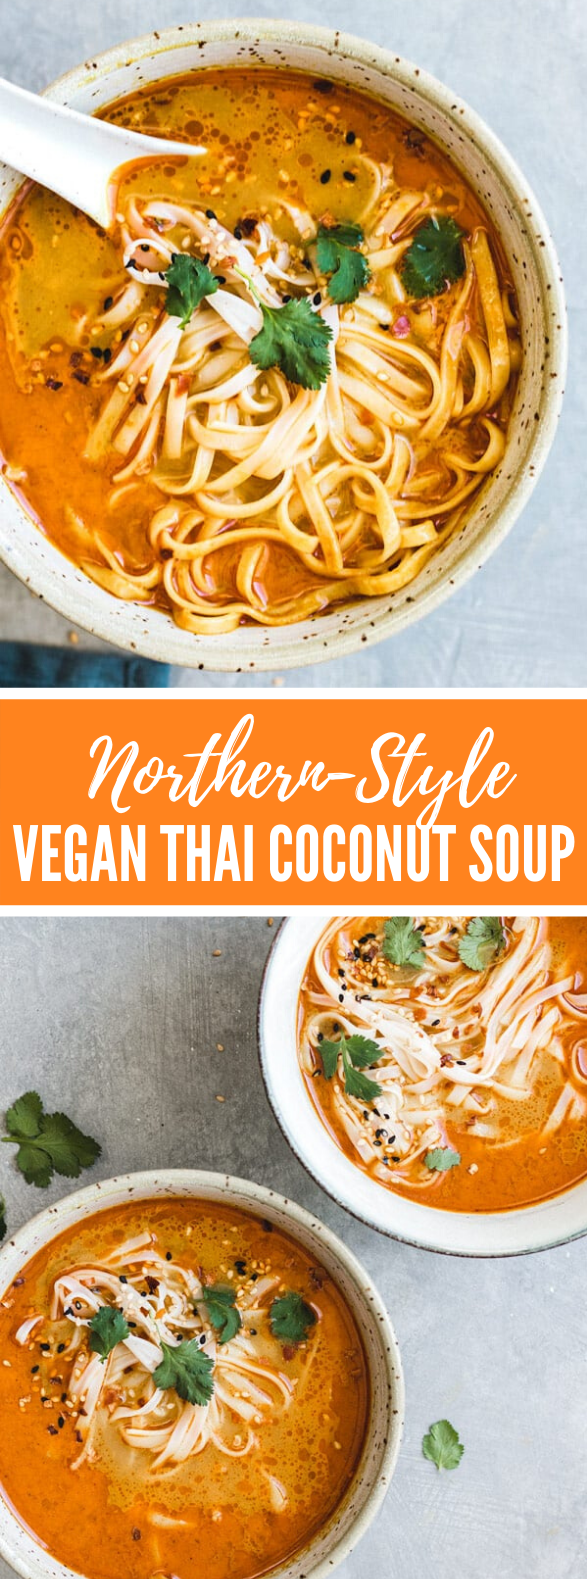 NORTHERN-STYLE VEGAN THAI COCONUT SOUP #vegetarian #lunch